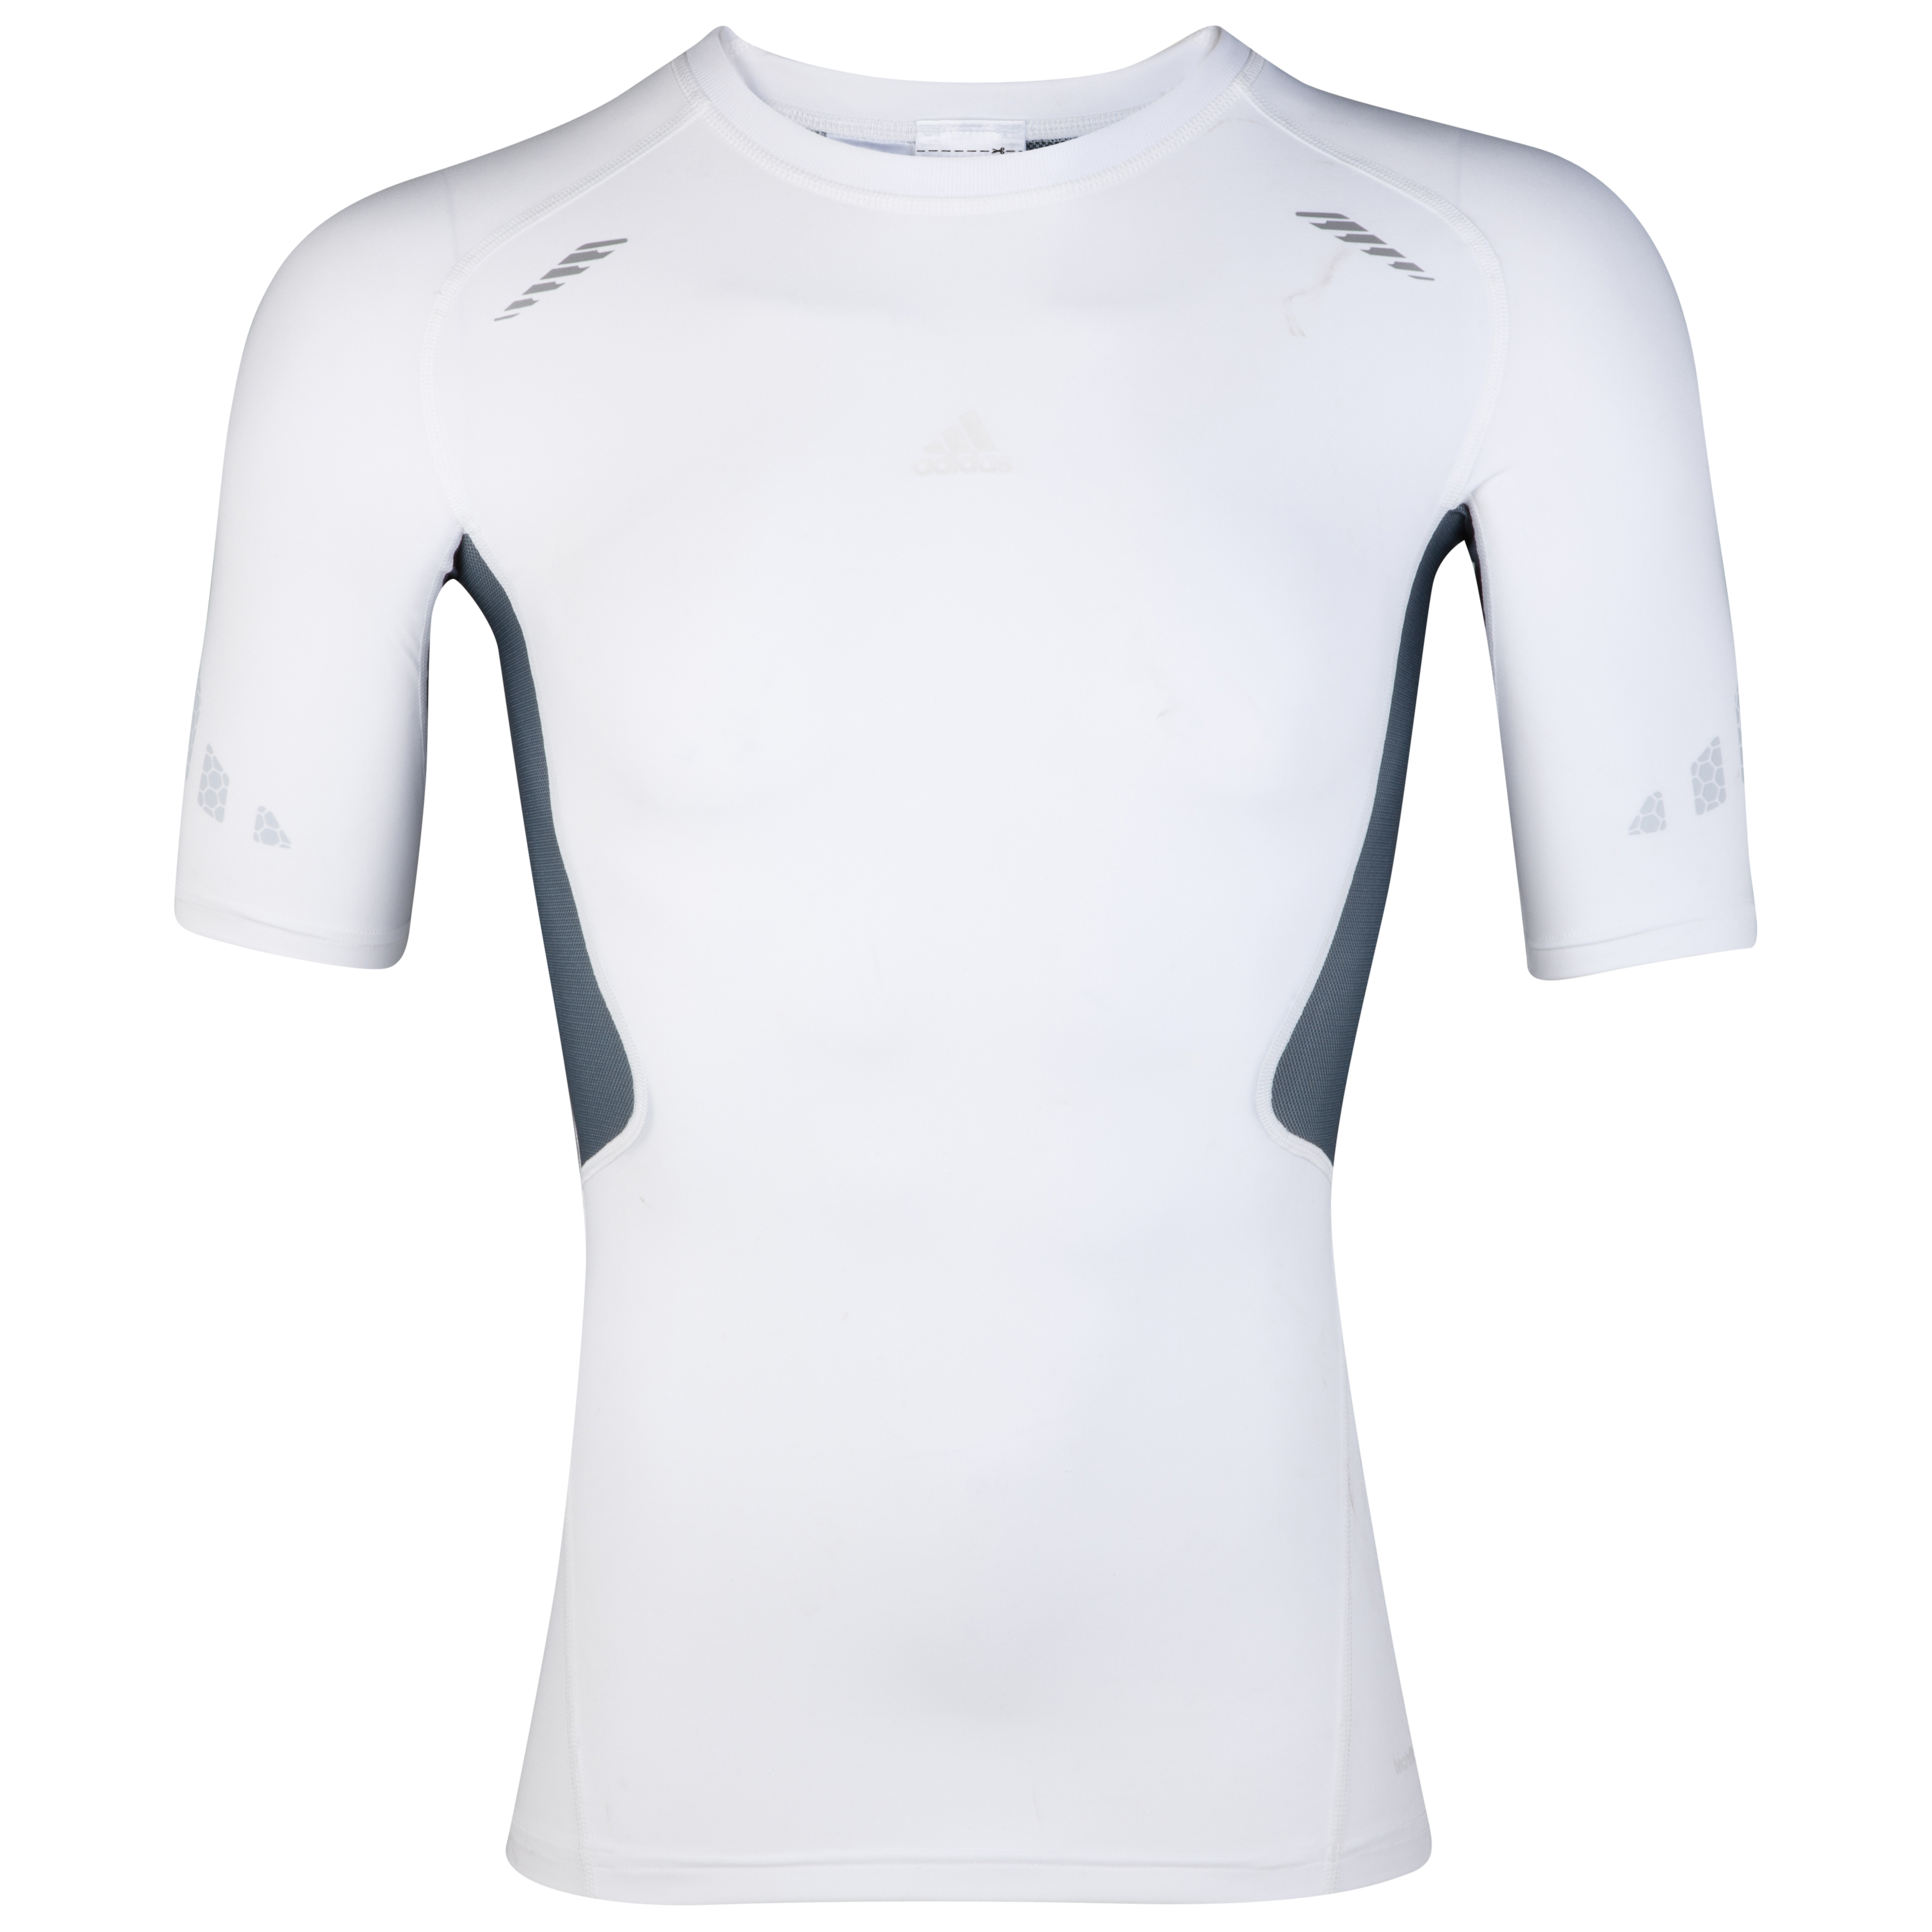 adidas TechFit Preperation Baselayer Top - Short Sleeve - White